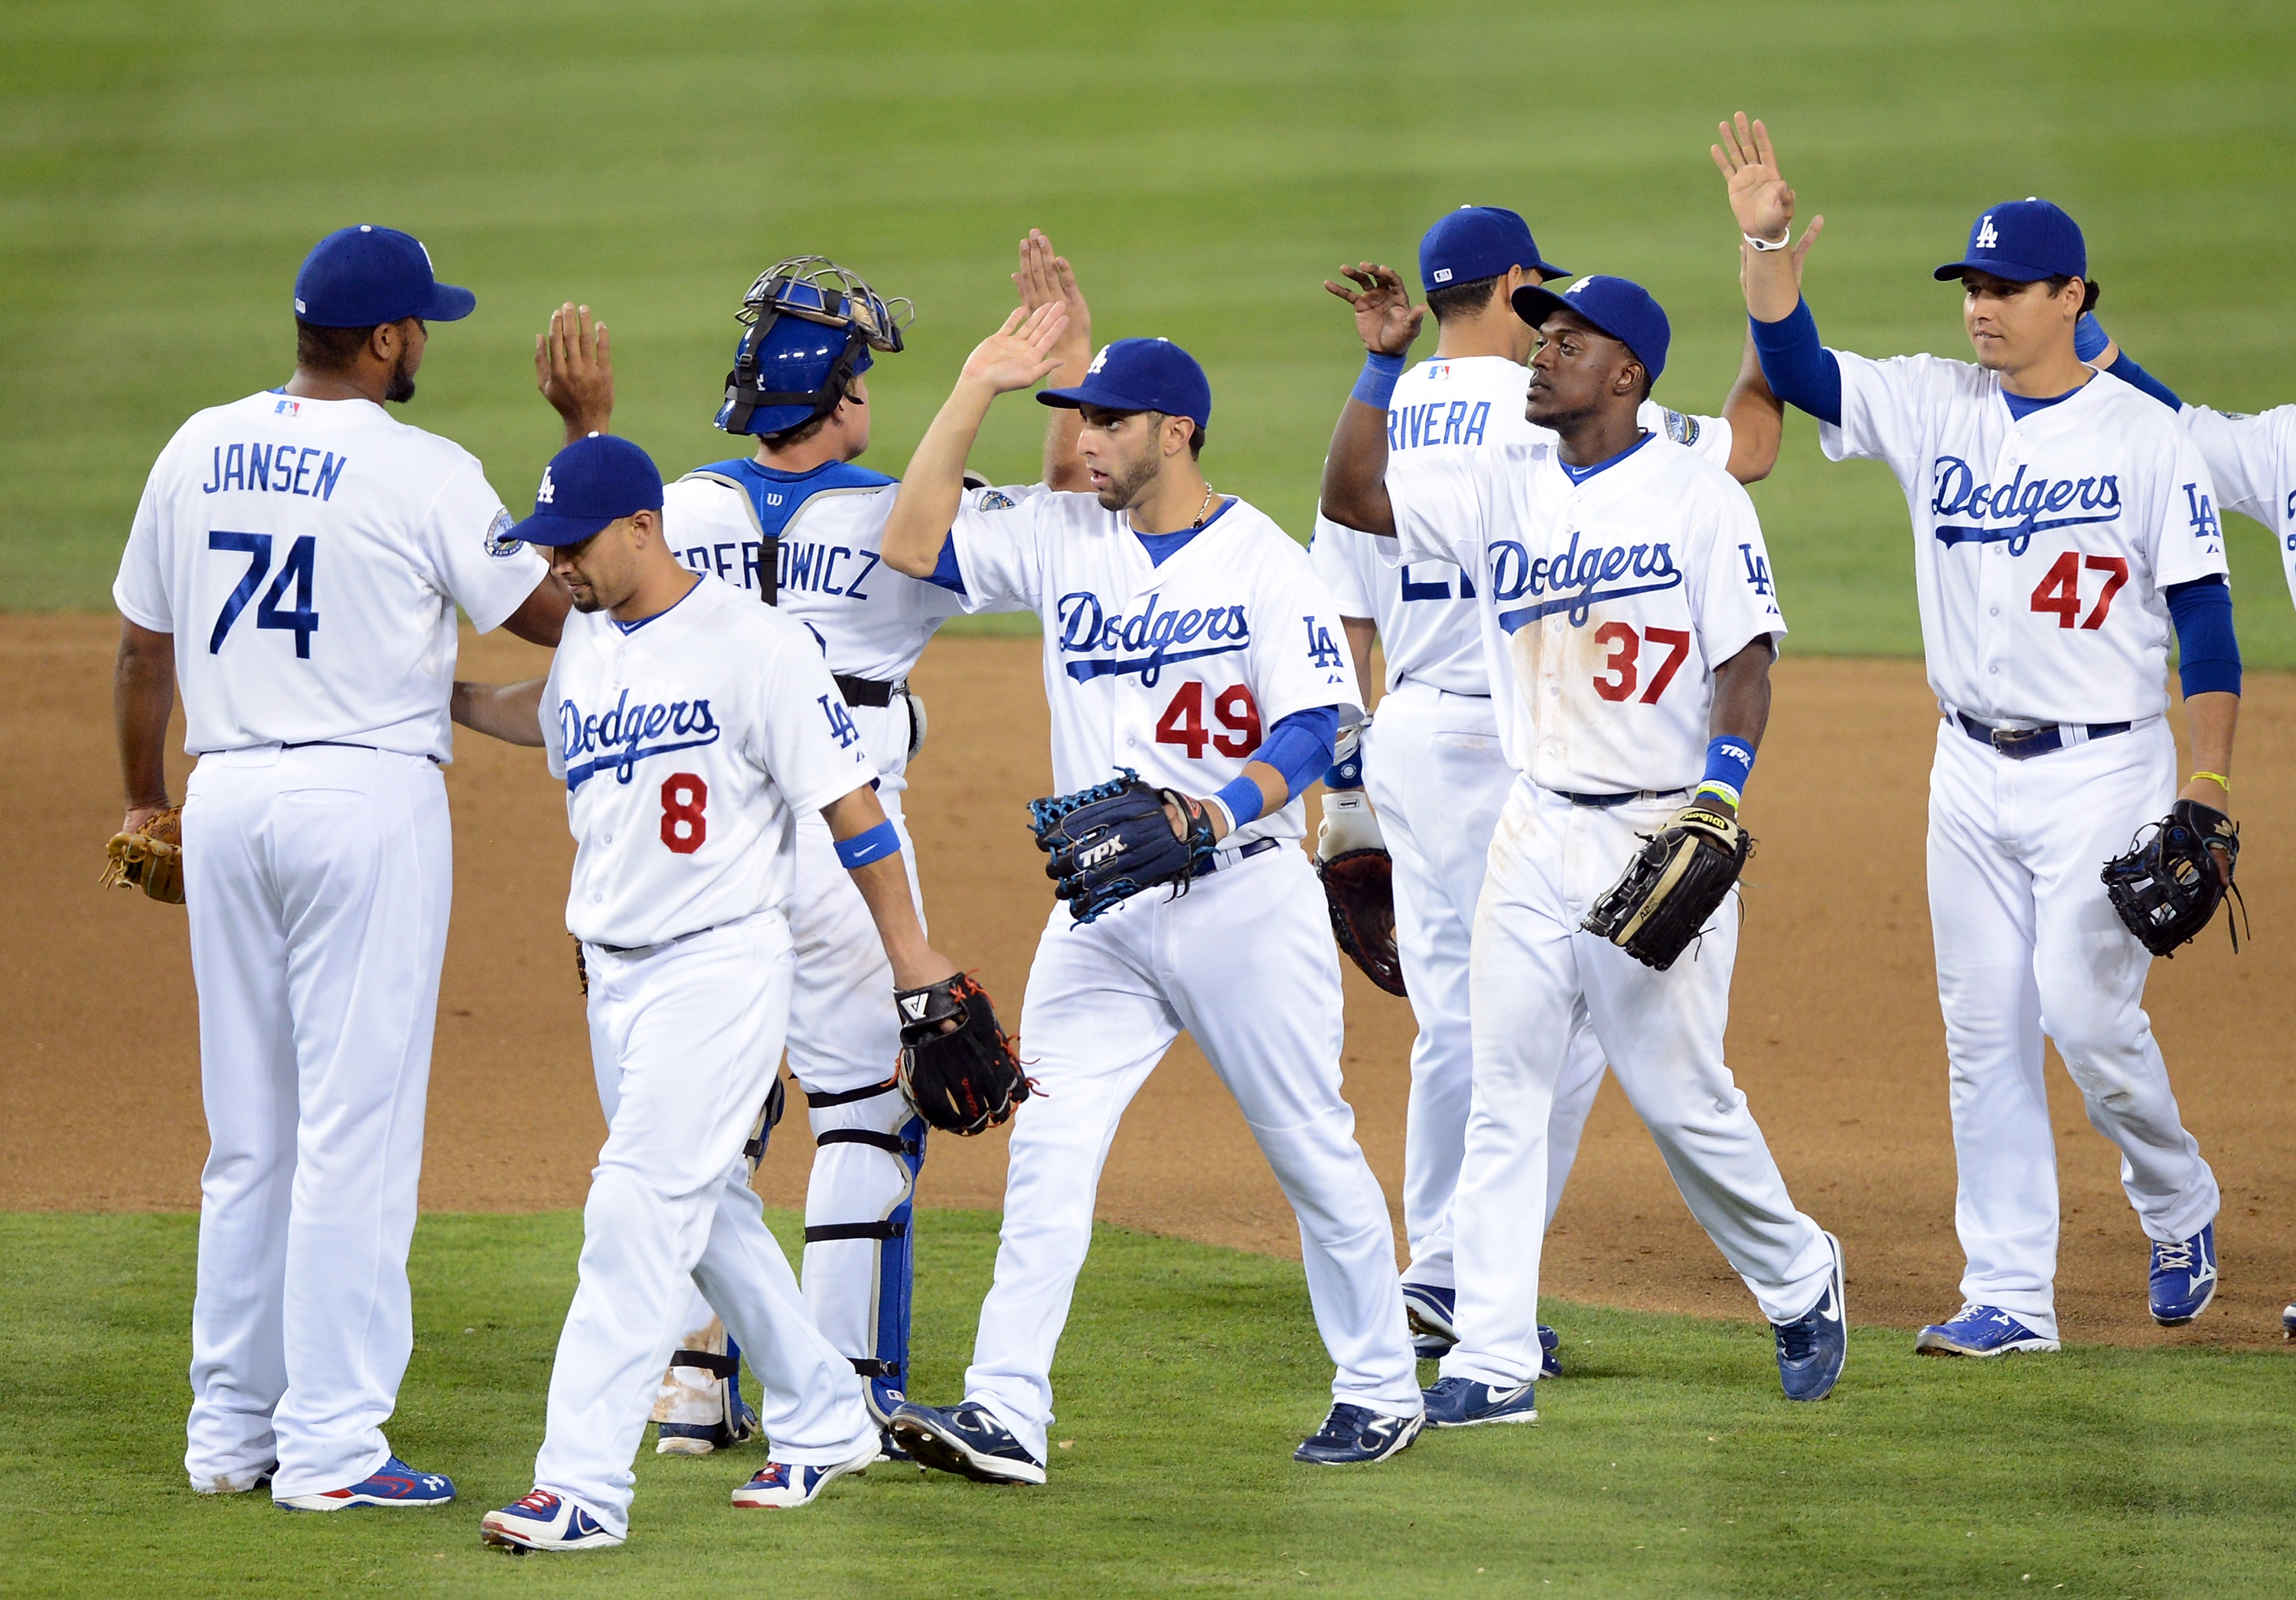 Star power couldn't get the Dodgers in the playoffs. They may double up on their plans this offseason. (Getty)